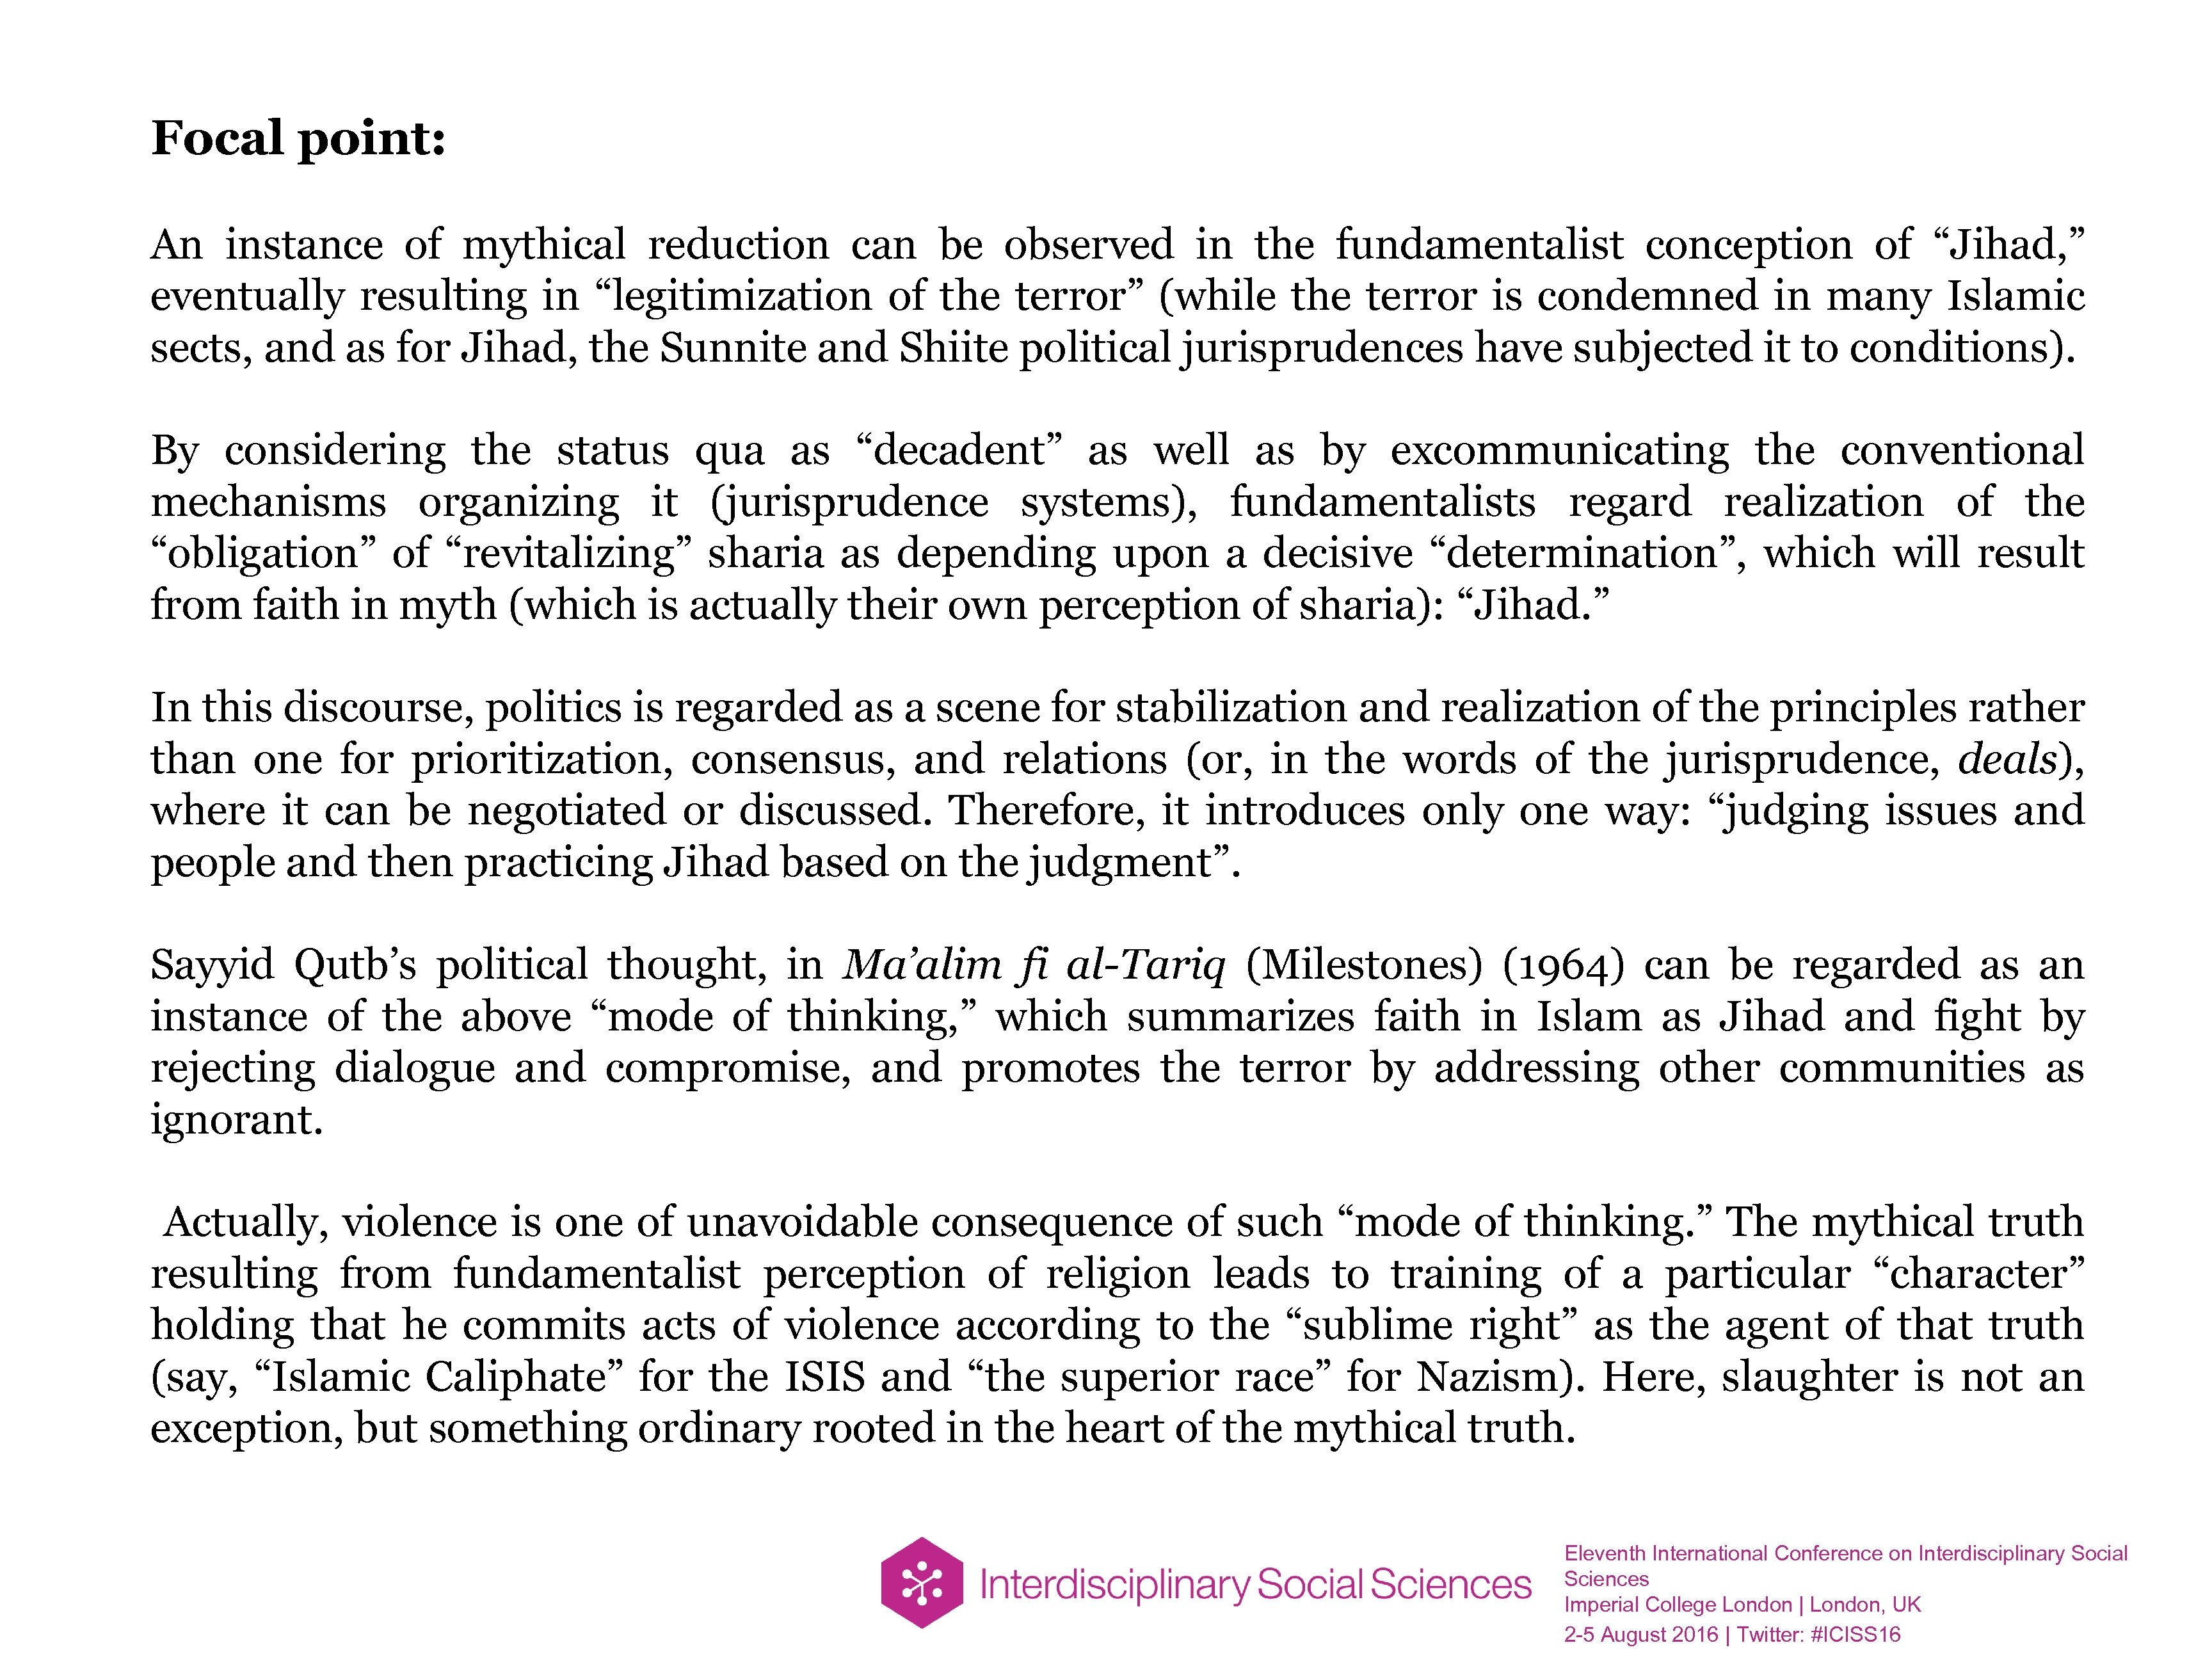 Focal point: An instance of mythical reduction can be observed in the fundamentalist conception